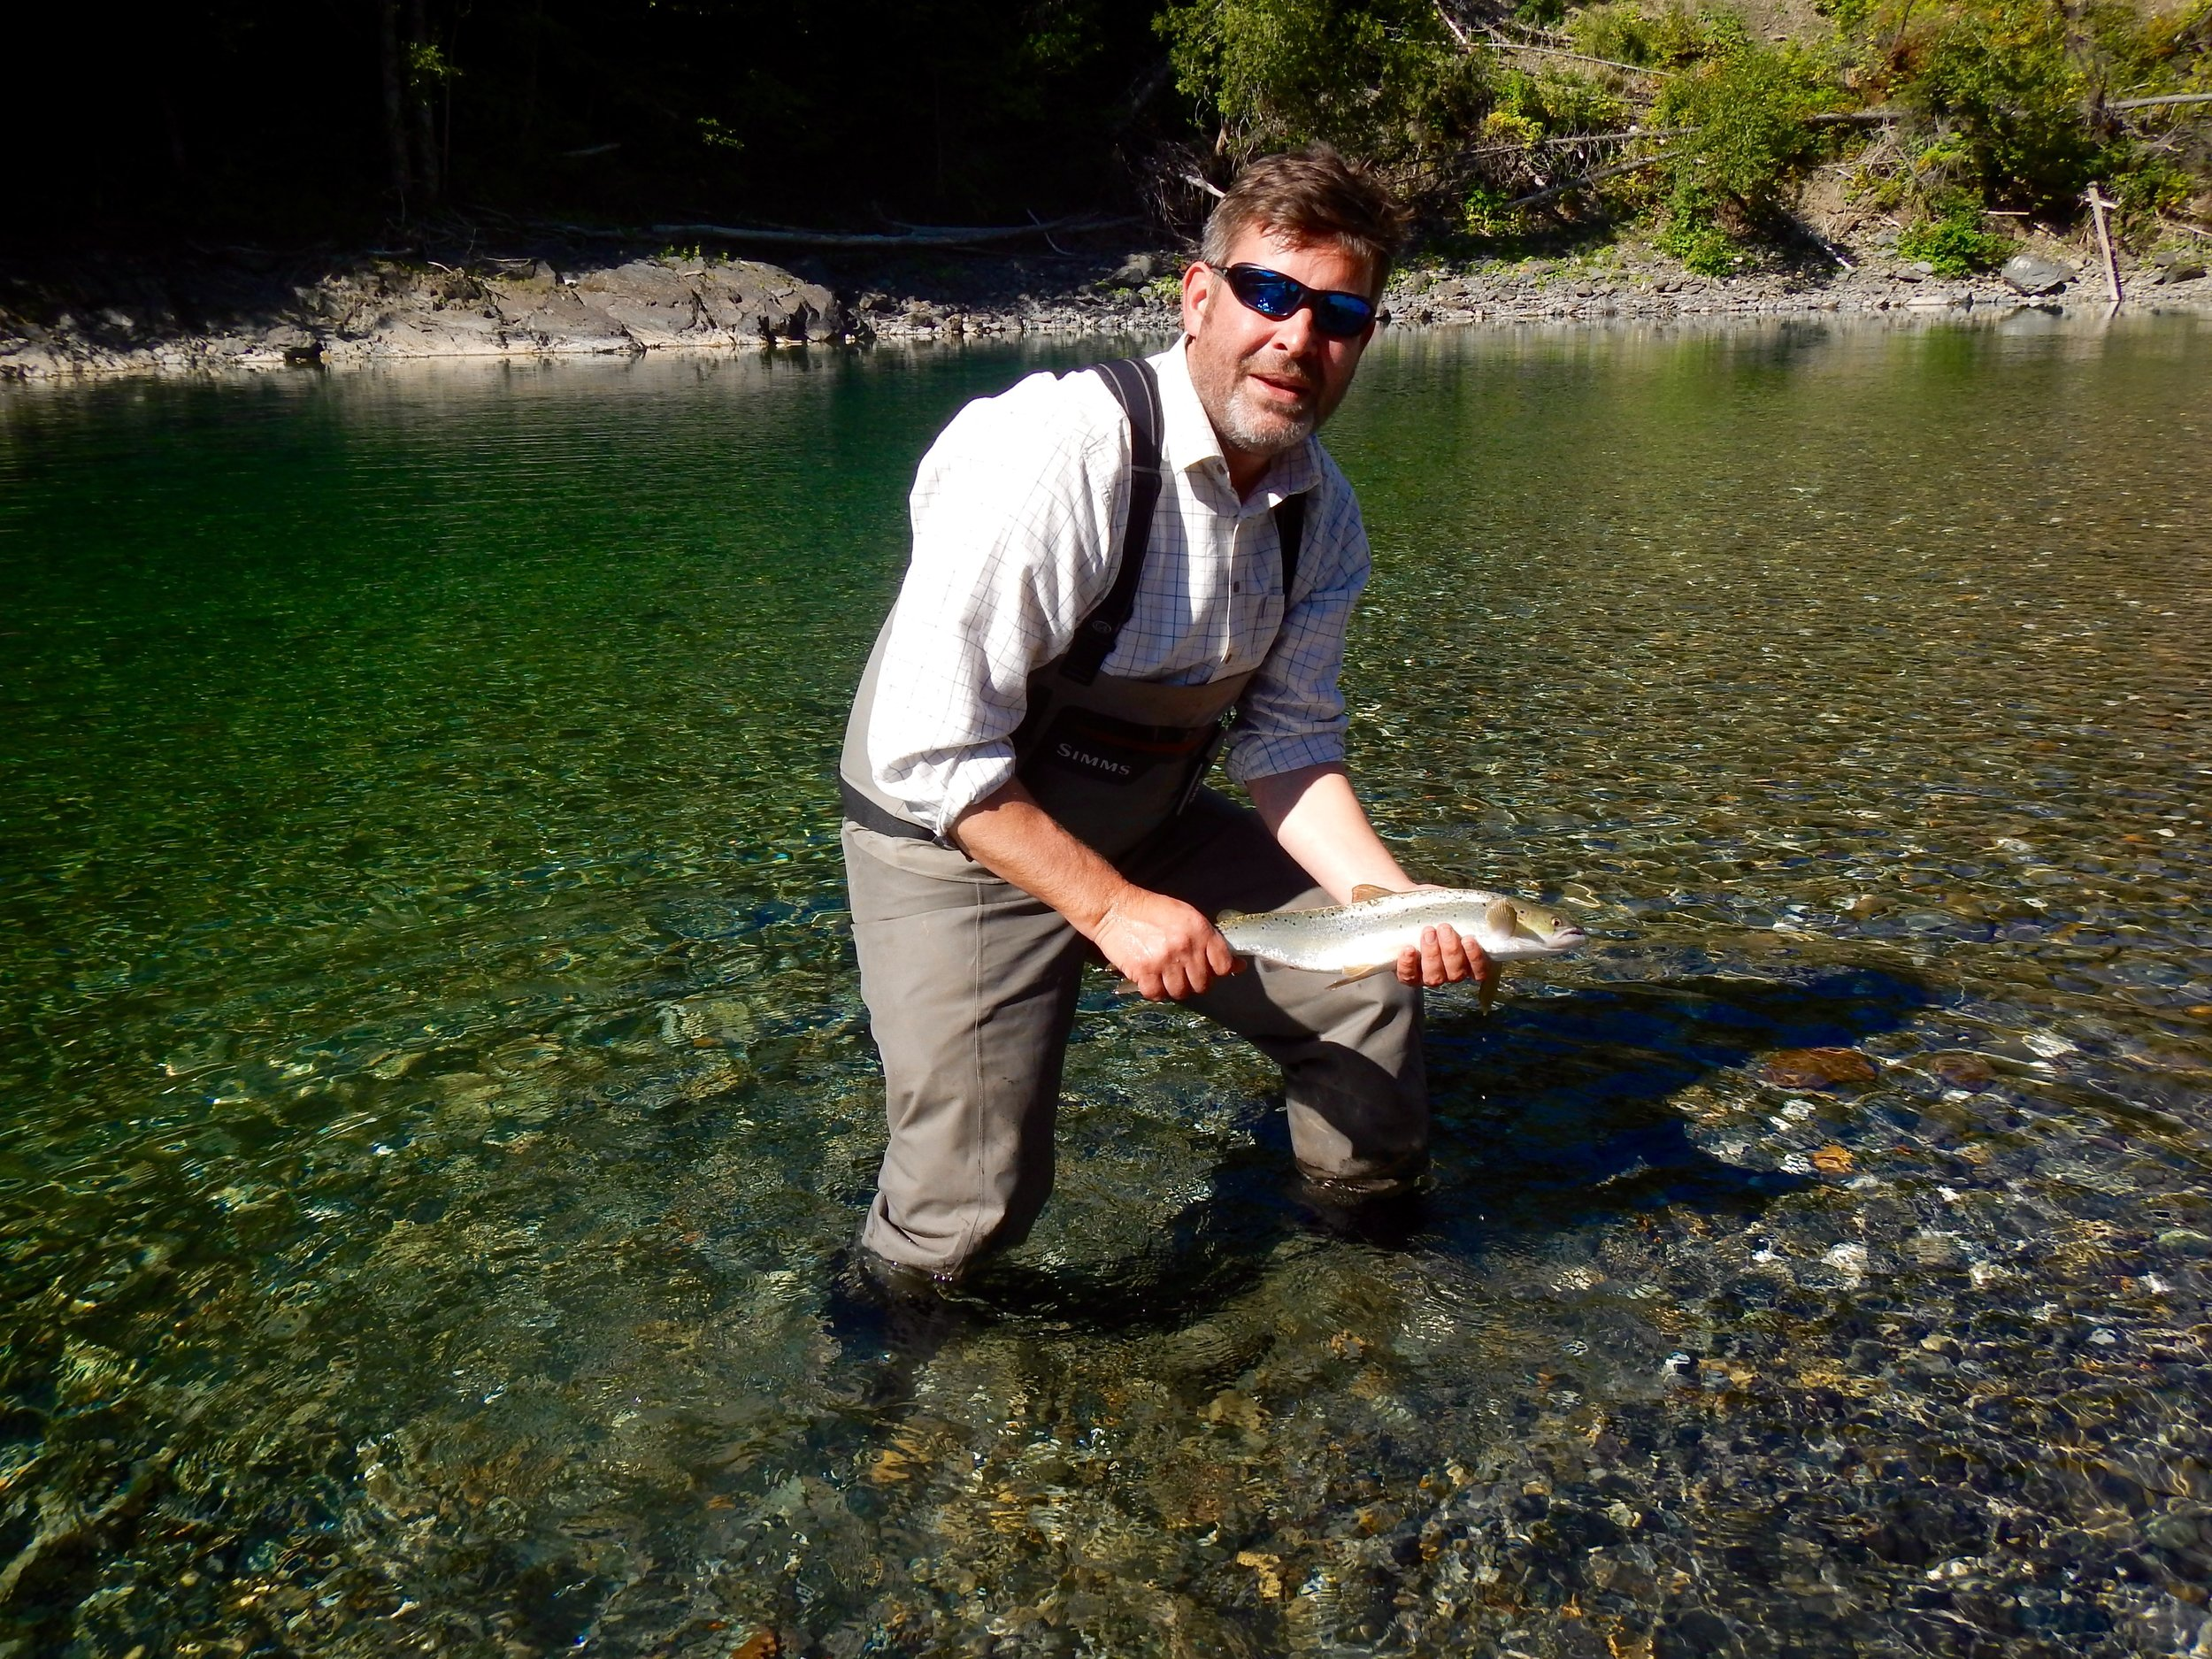 William Cox rom the UK with his first Canadian salmon, nicely done Will.